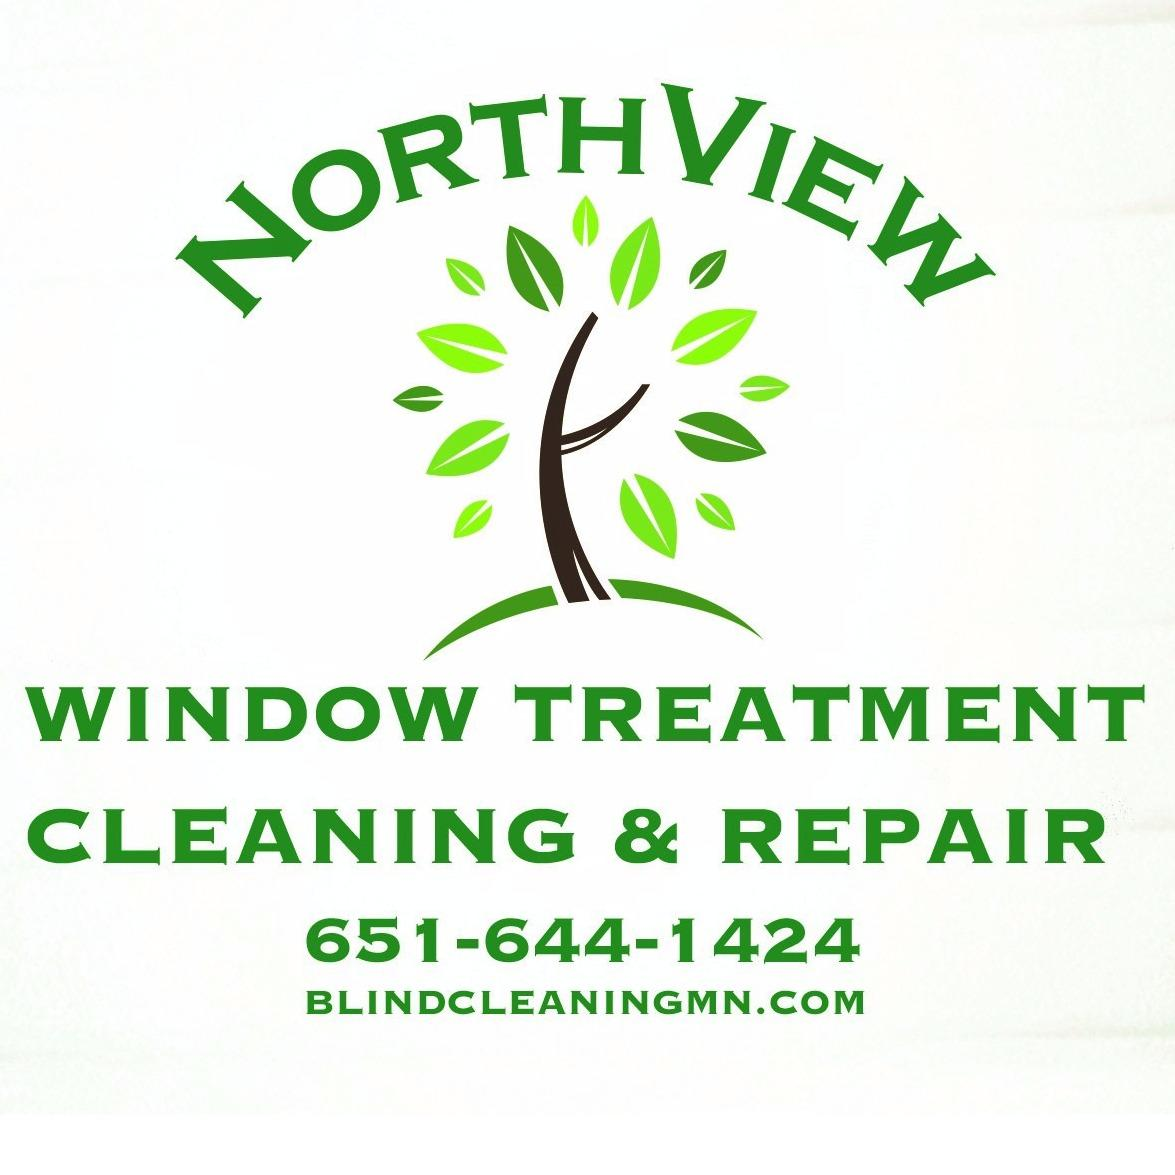 Northview Window Treatment Cleaning and Repair